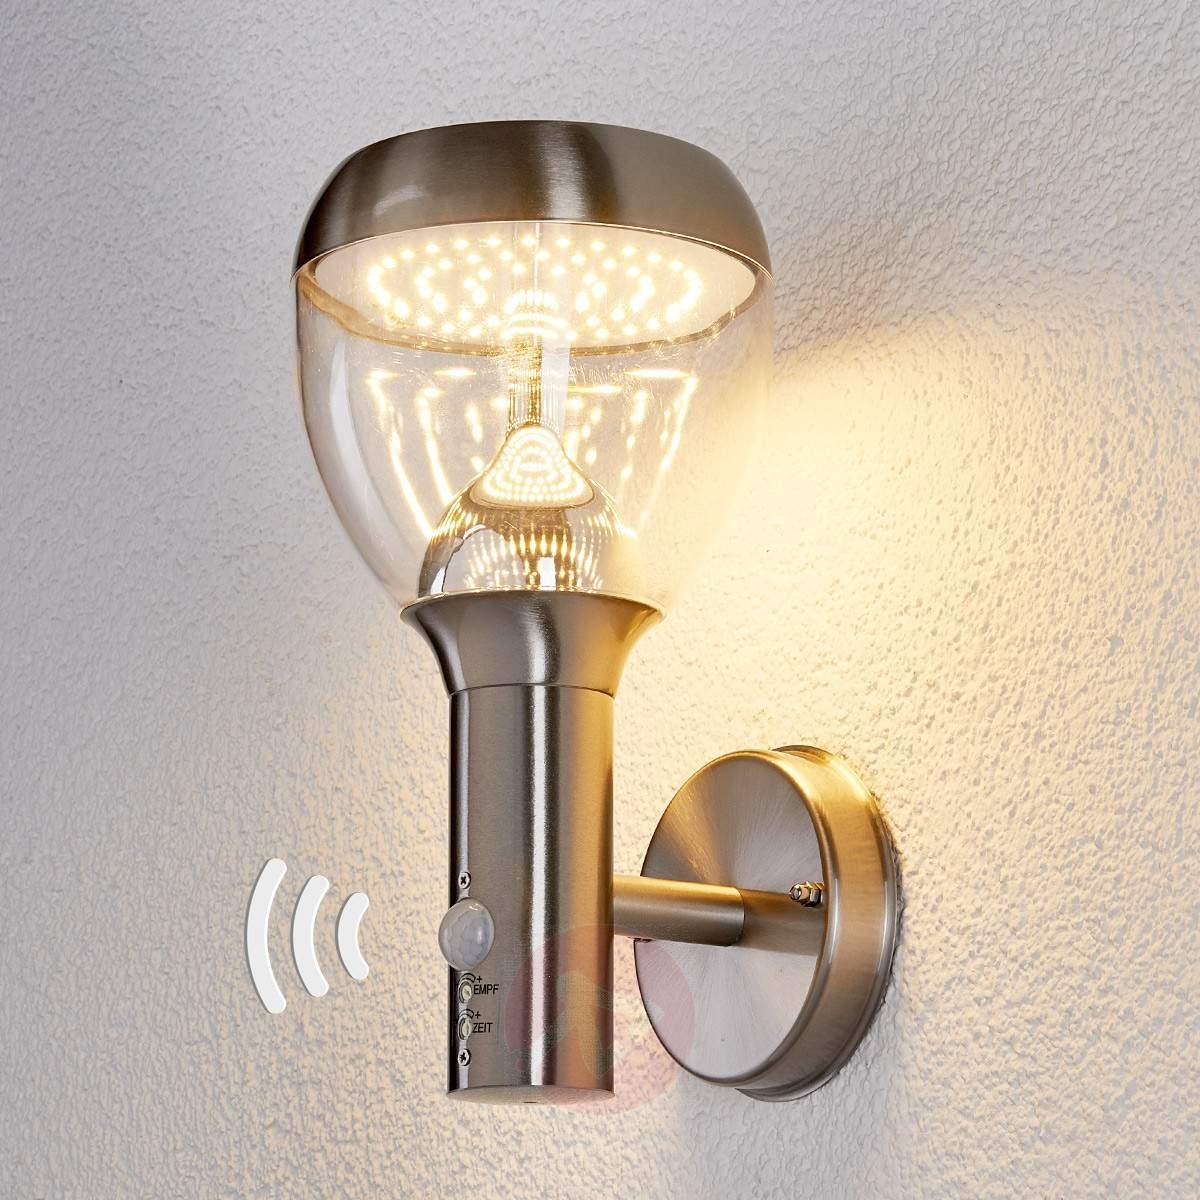 Etta Stainless Steel Sensor Outdoor Wall Light,led | Lights.co (#8 of 15)